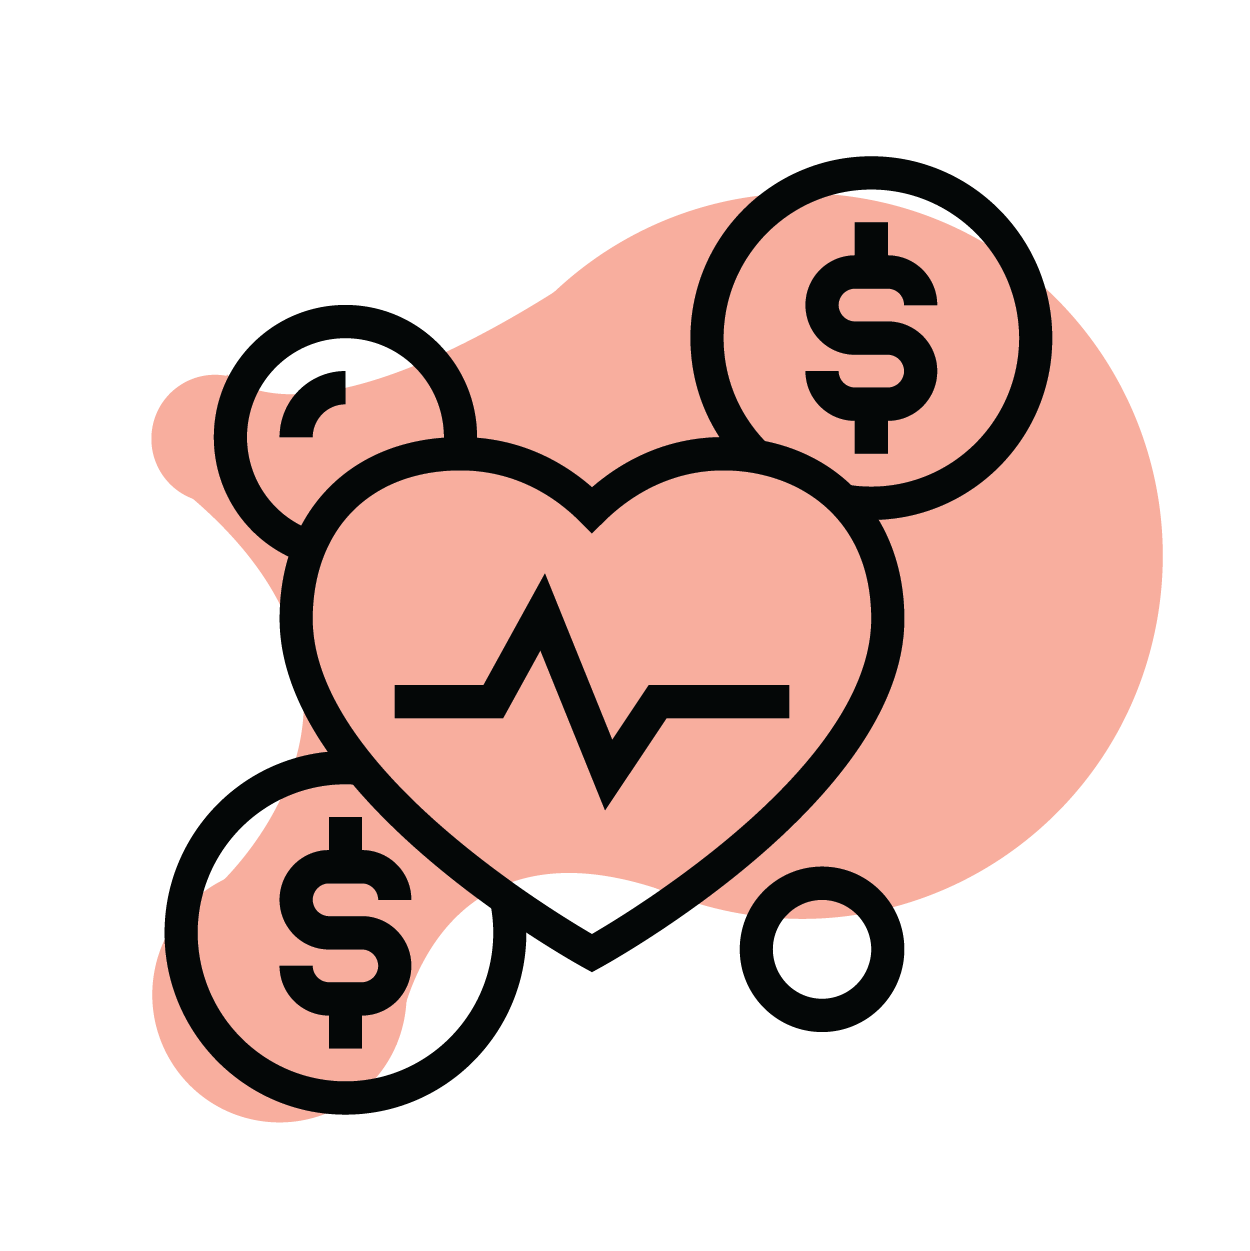 Icon of heart and dollar sign in bubbles